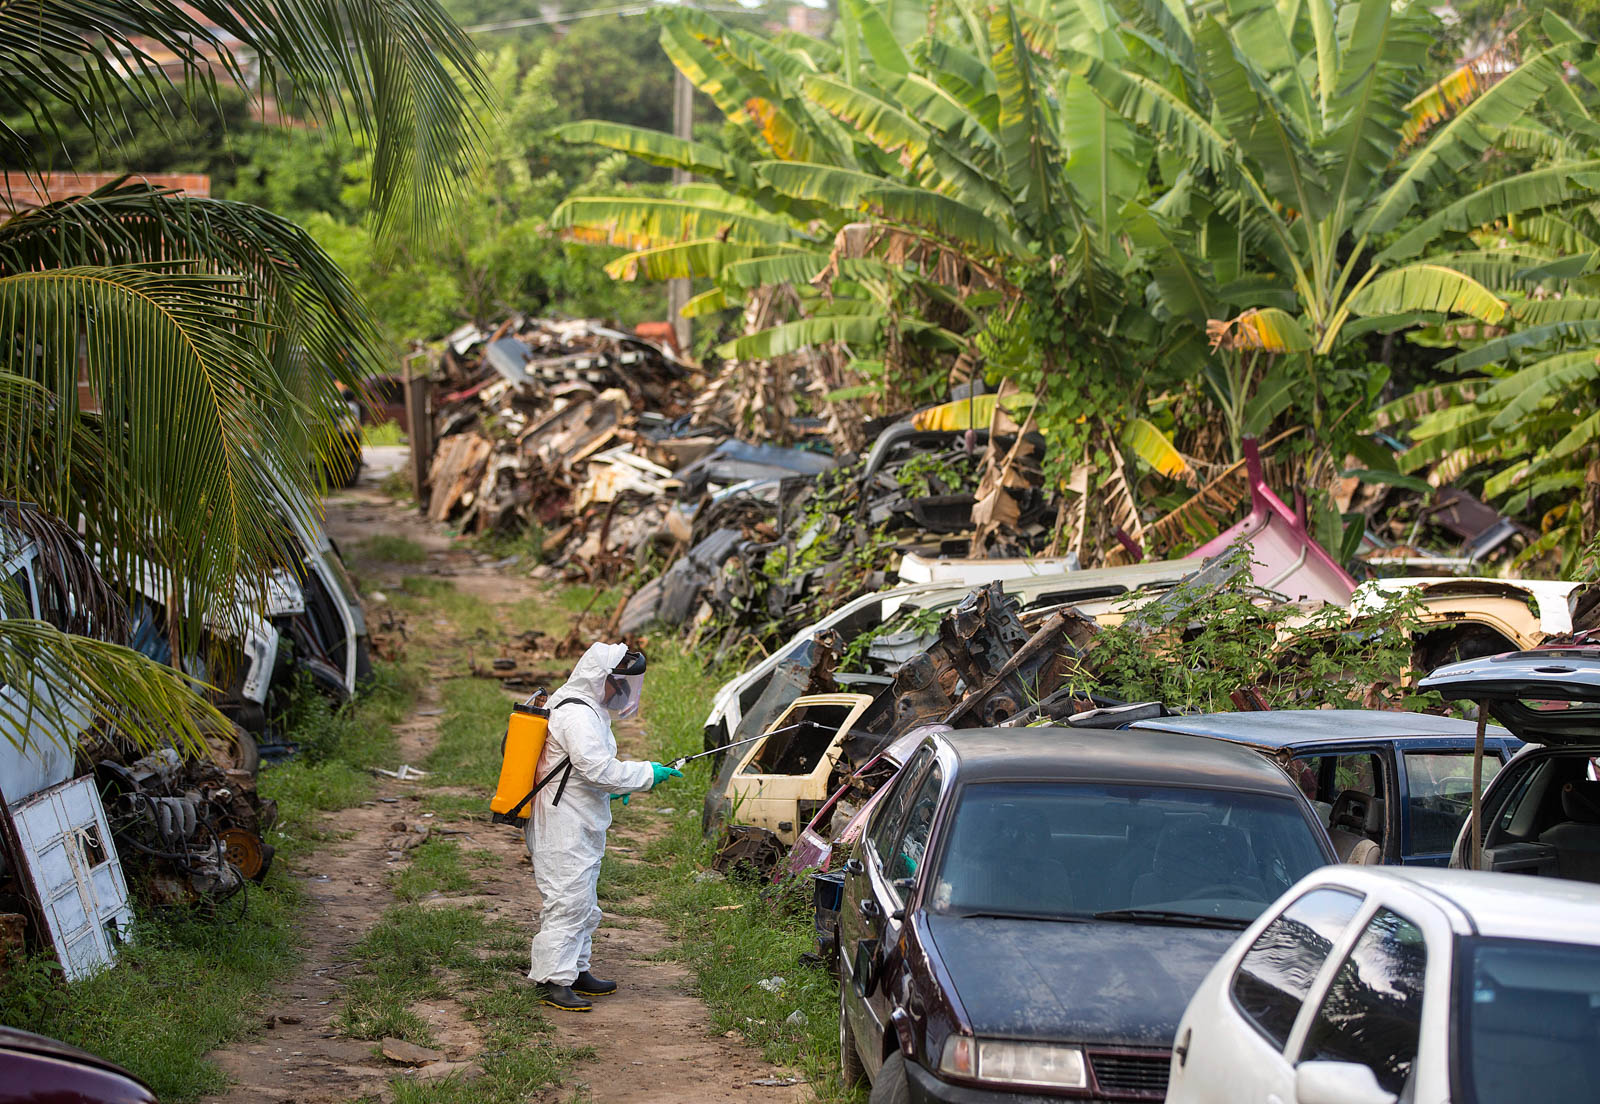 Worker in protective suit spraying insecticide in junkyard surrounded by tropical trees (© AP Images)